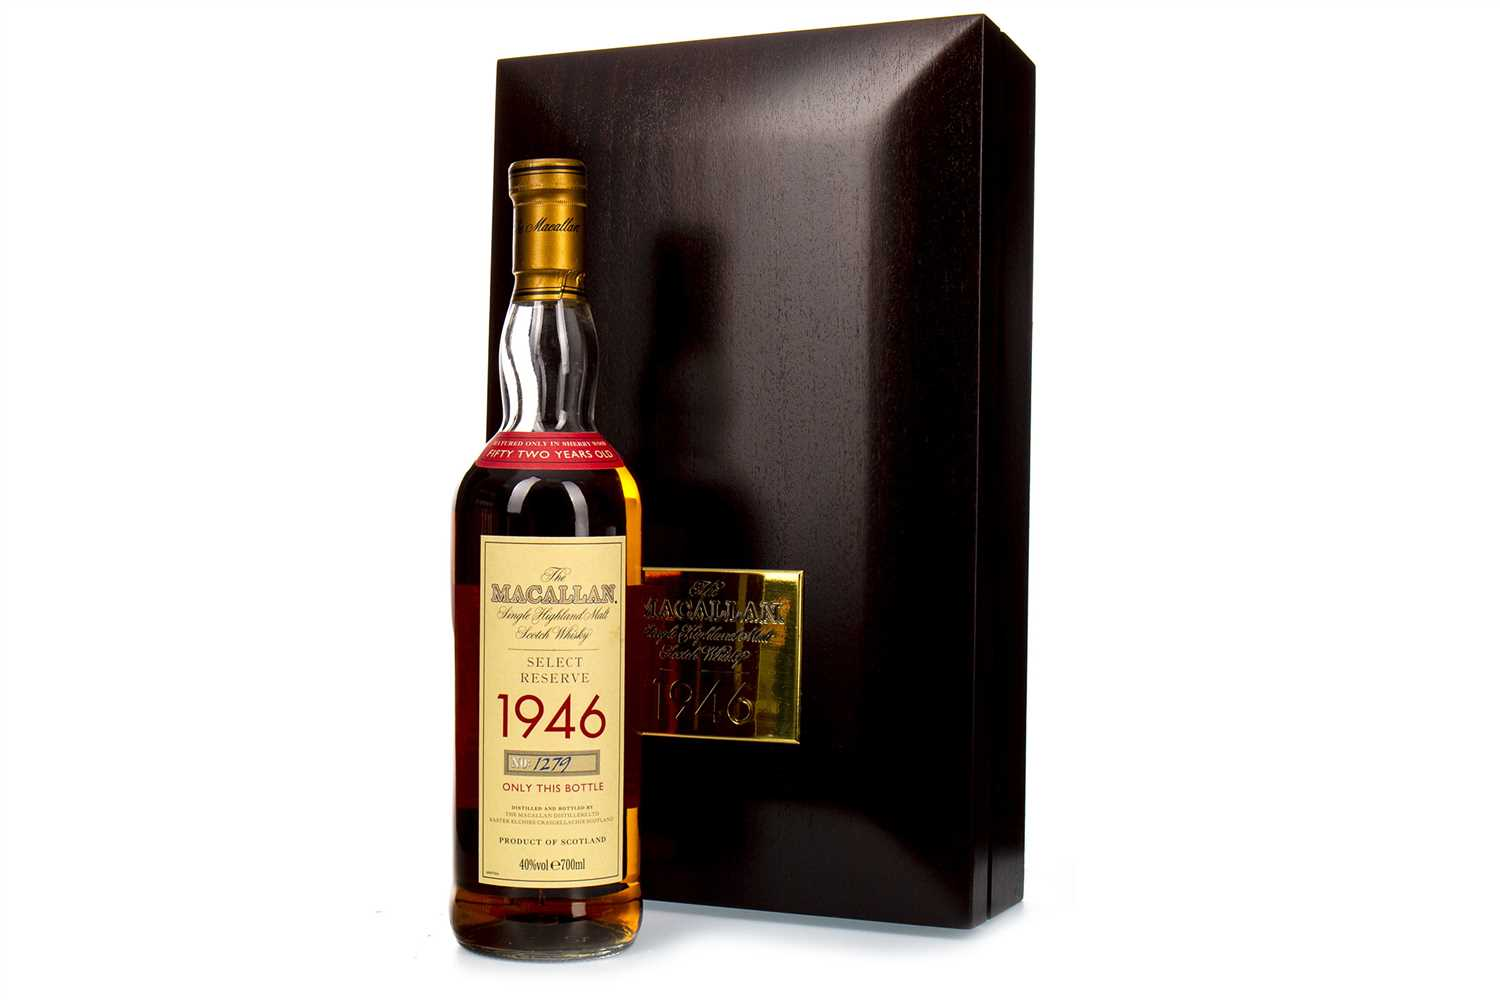 Lot 50-MACALLAN 1946 SELECT RESERVE 52 YEARS OLD